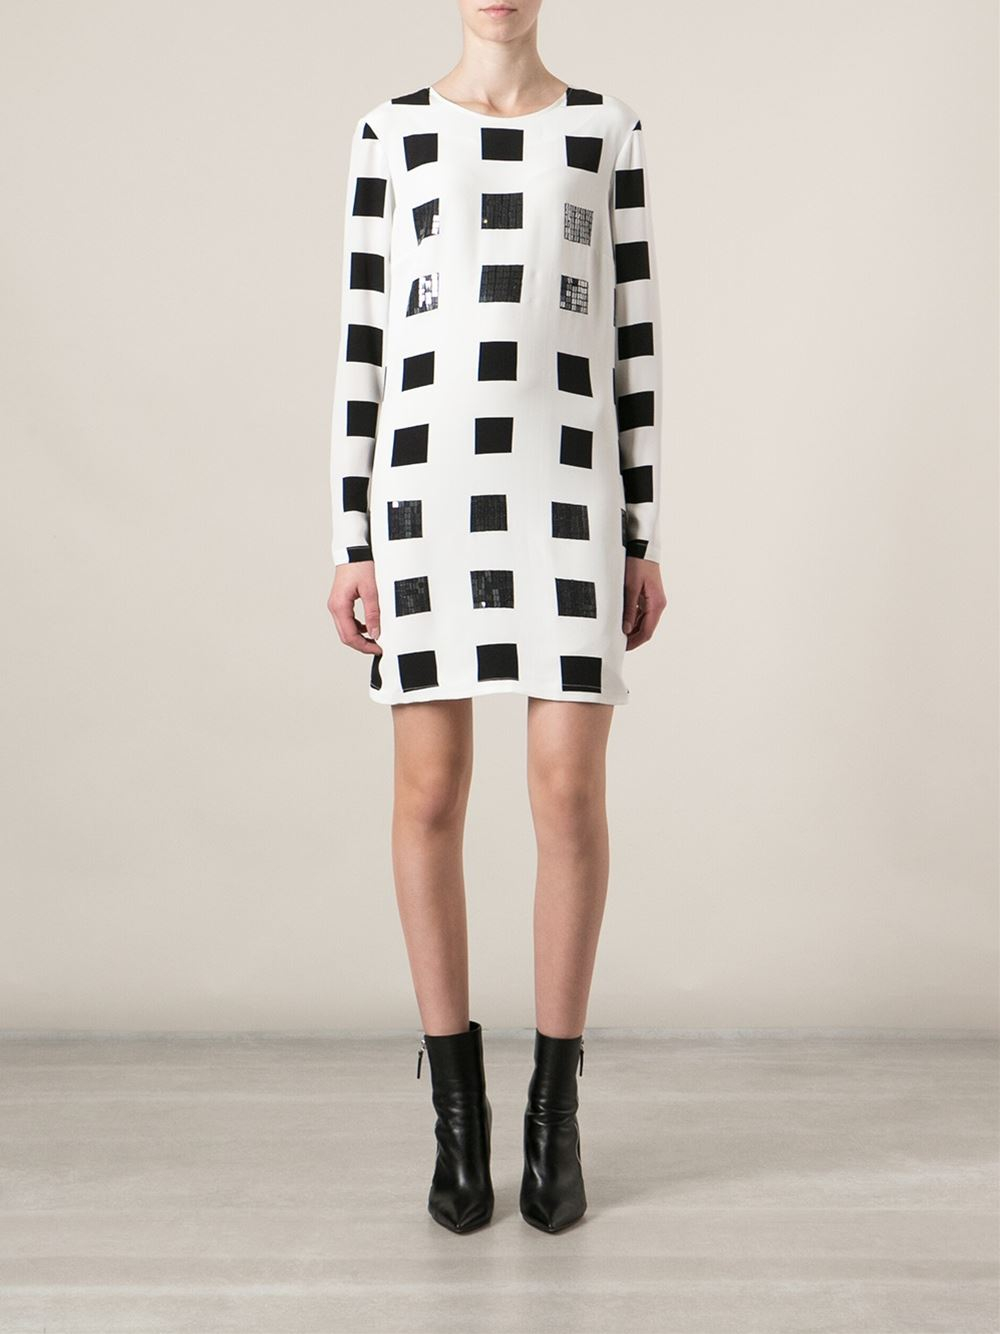 Fancy dress designers kenzo white squares shift dress product 1 24736976 0 852585527 normal